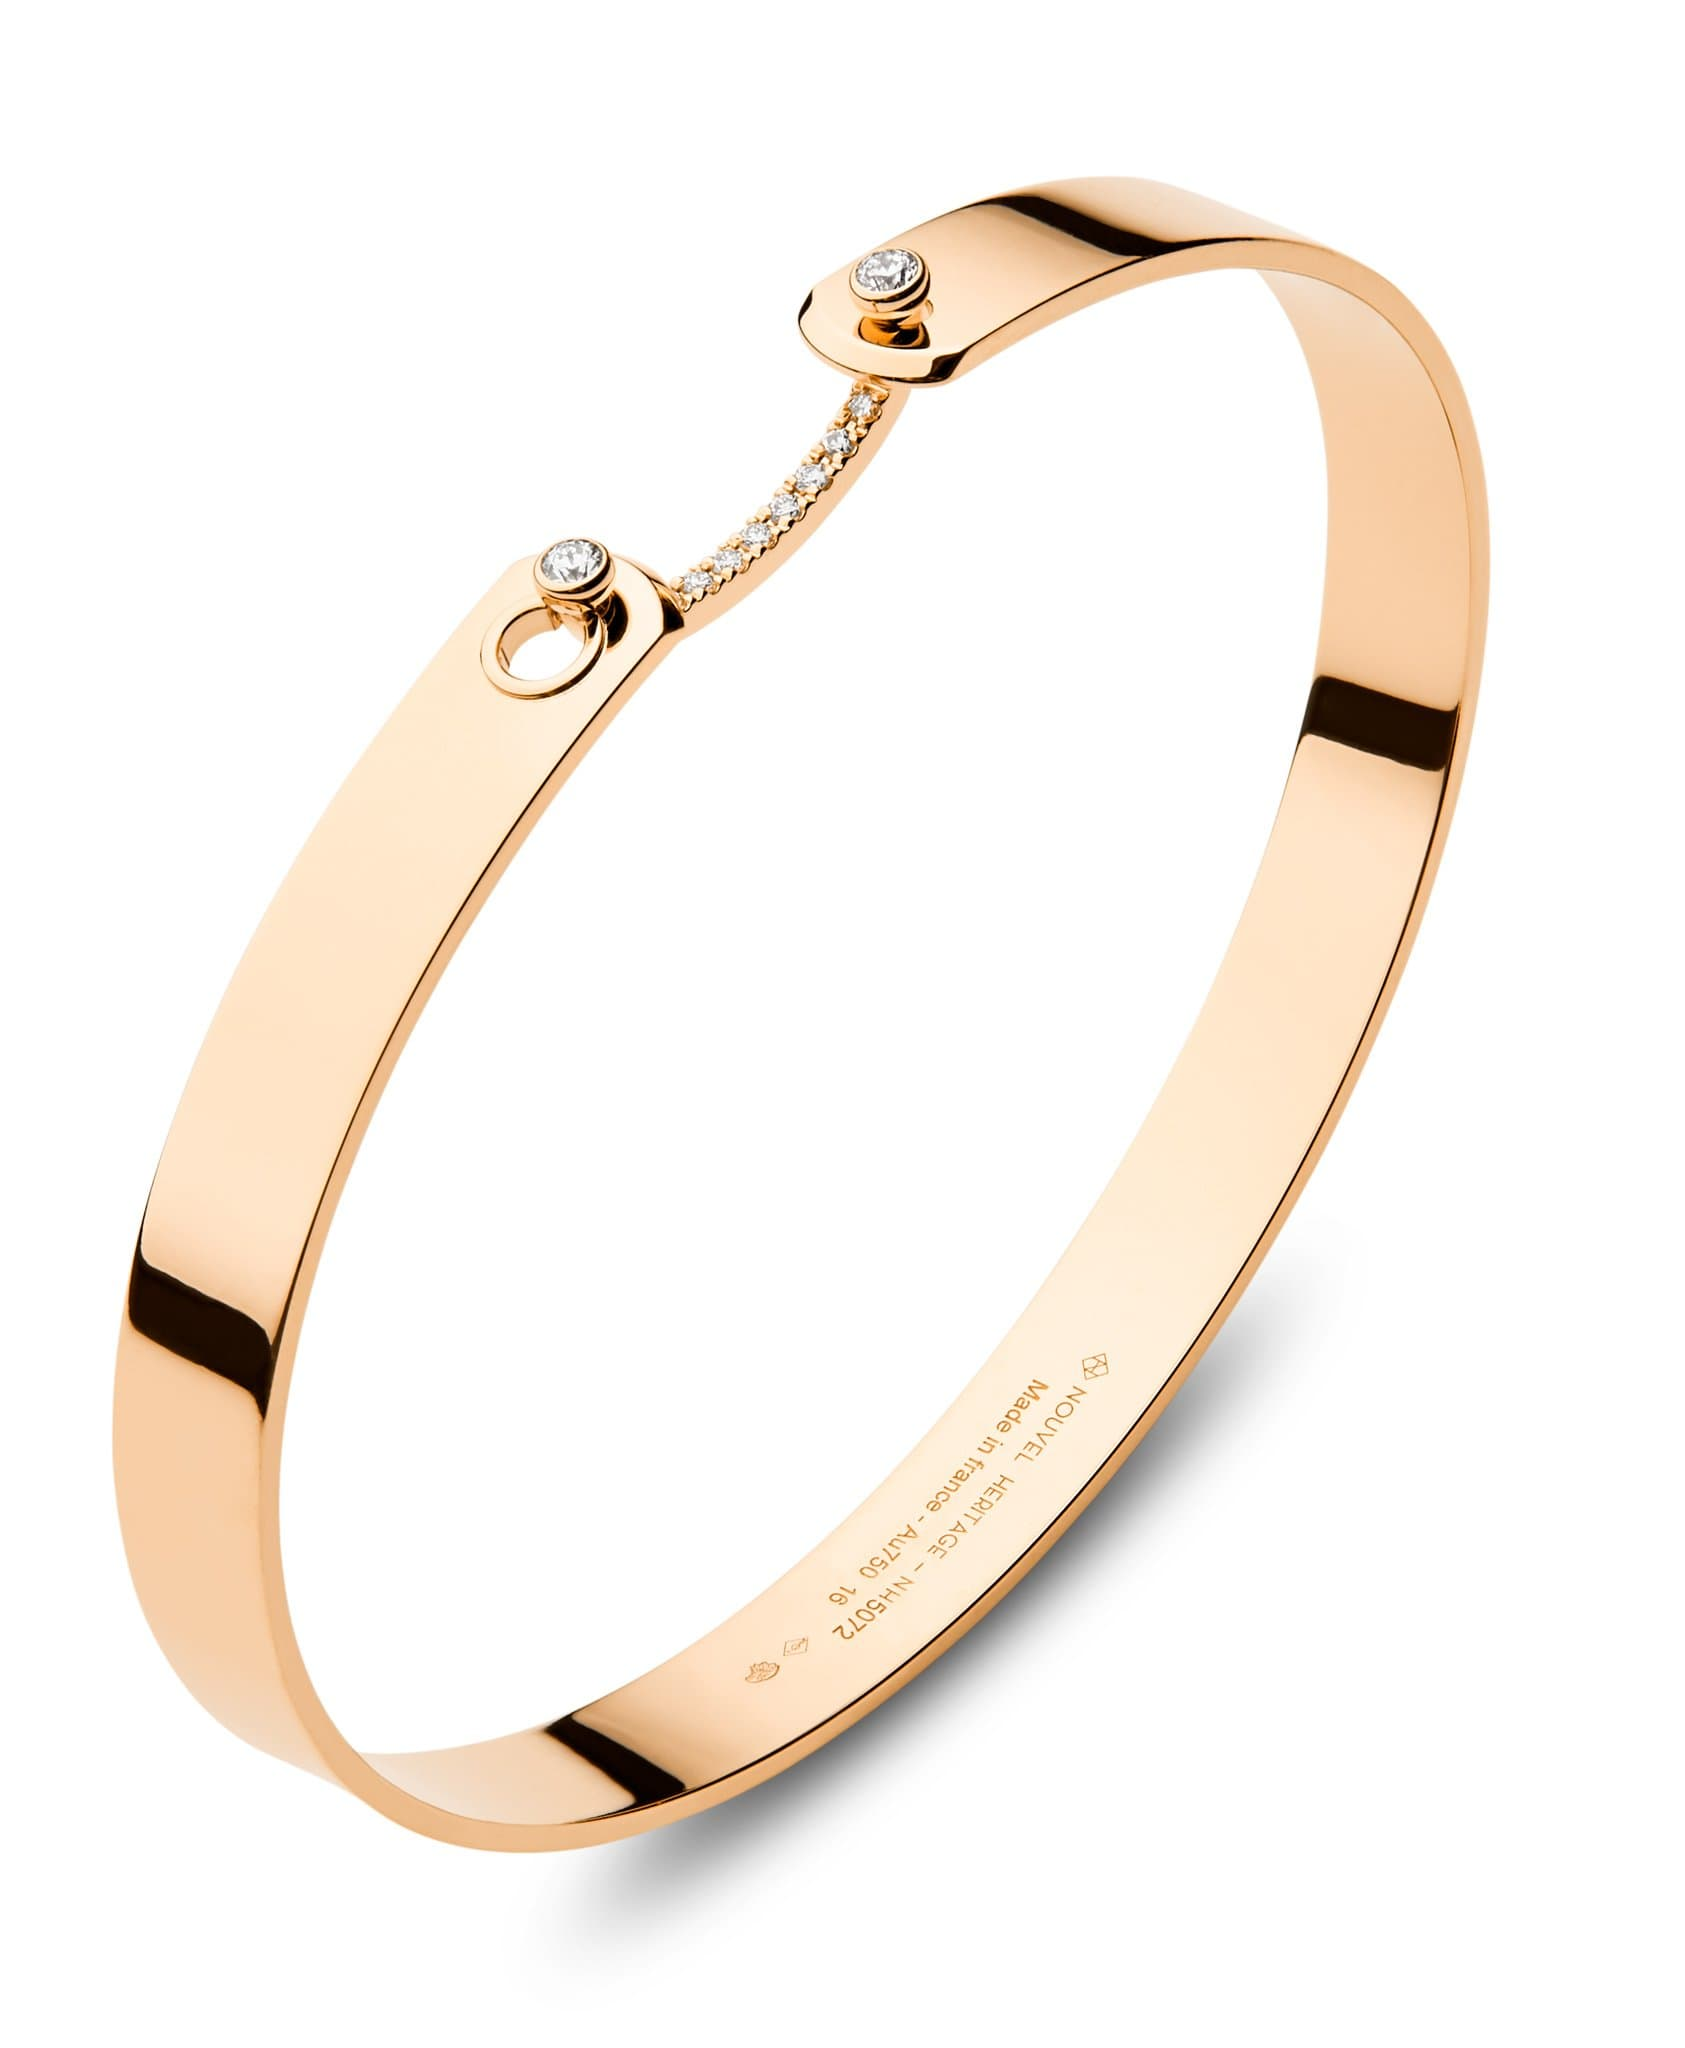 Business Meeting GM Mood Bangle: Discover Luxury Fine Jewelry | Nouvel Heritage || Rose Gold